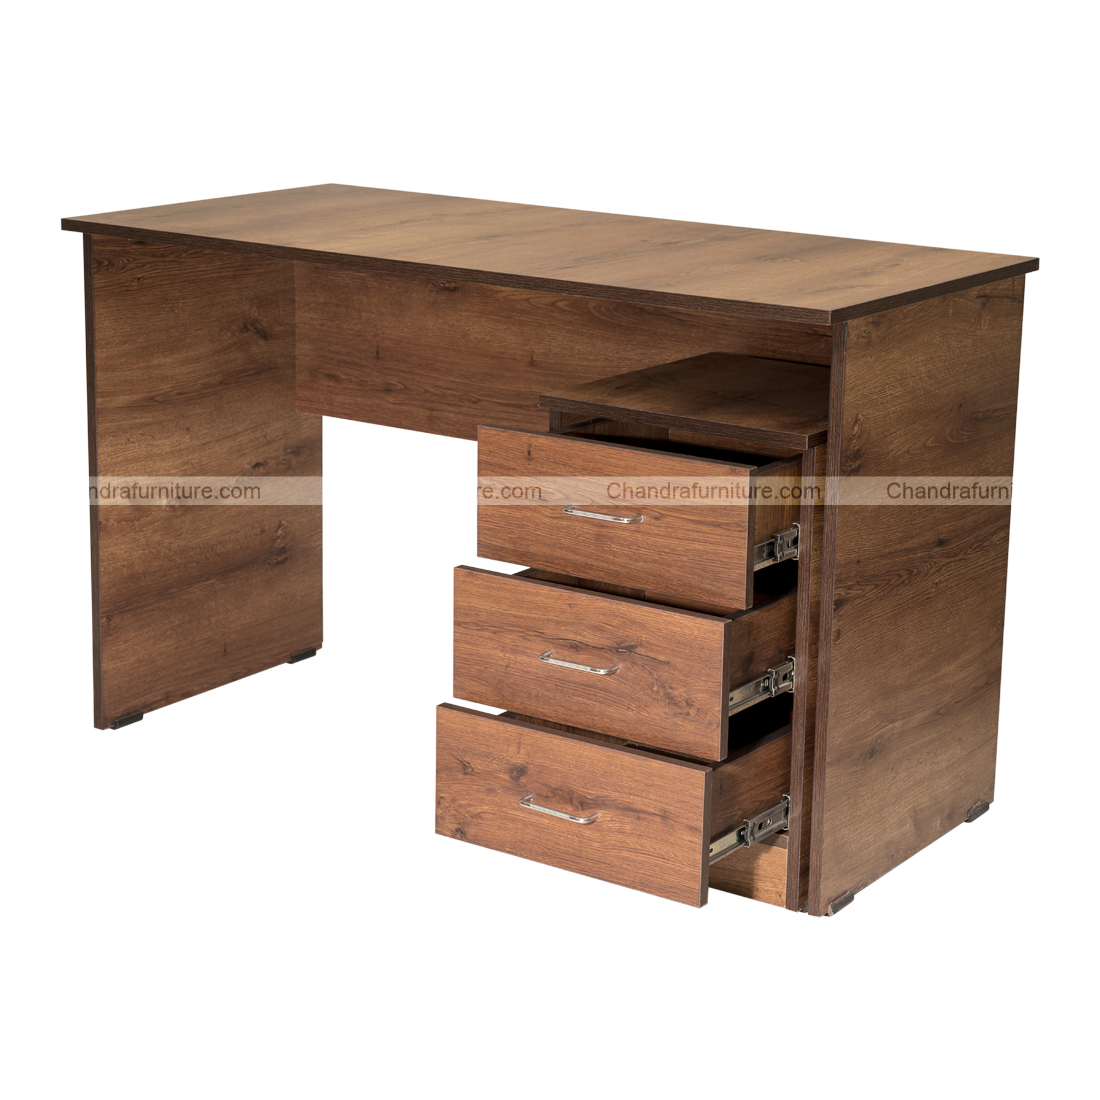 "CHANDRA FURNITURE STUDY TABLE ""CLS-STB-02"""